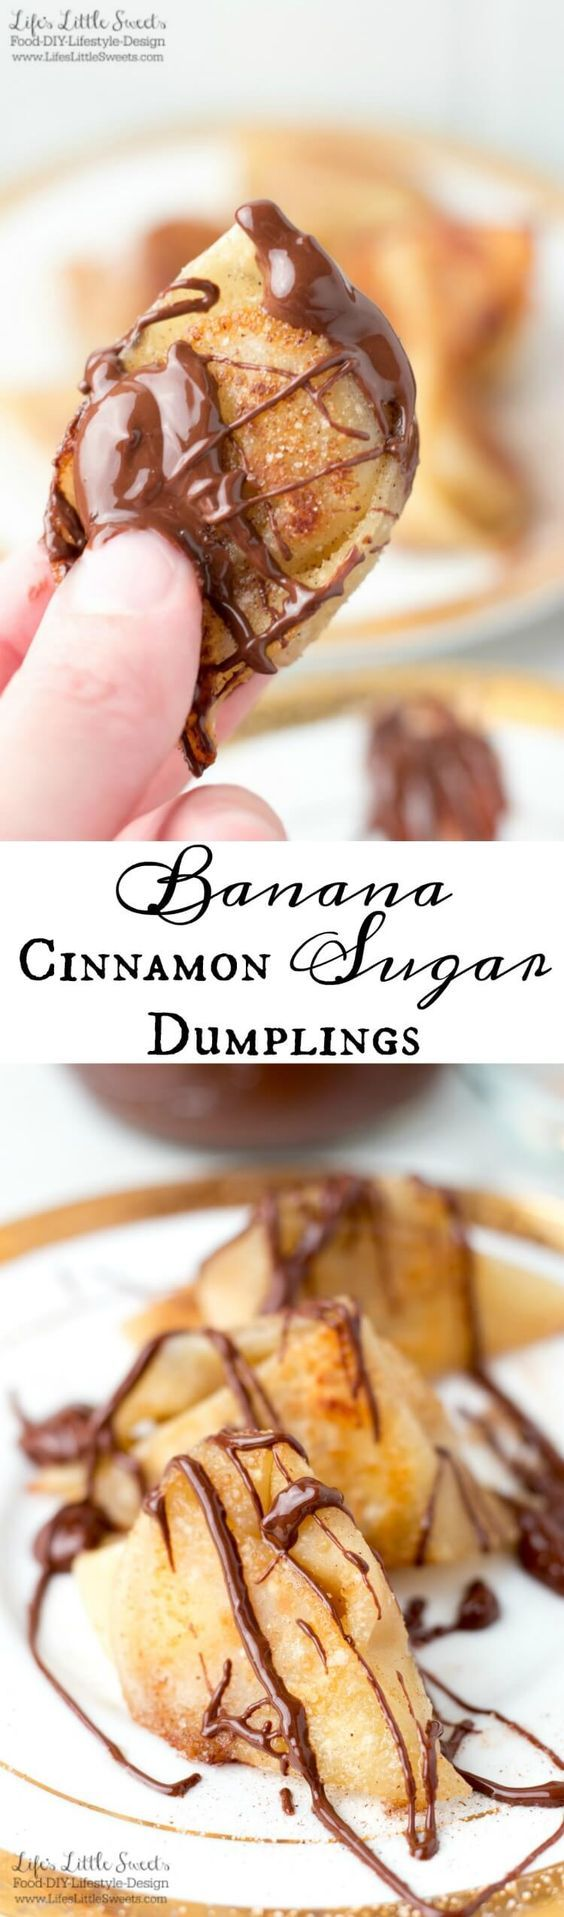 Banana Cinnamon Sugar Dumplings are a warm, buttery and delicious dessert. So easy to make with only 5 ingredients!